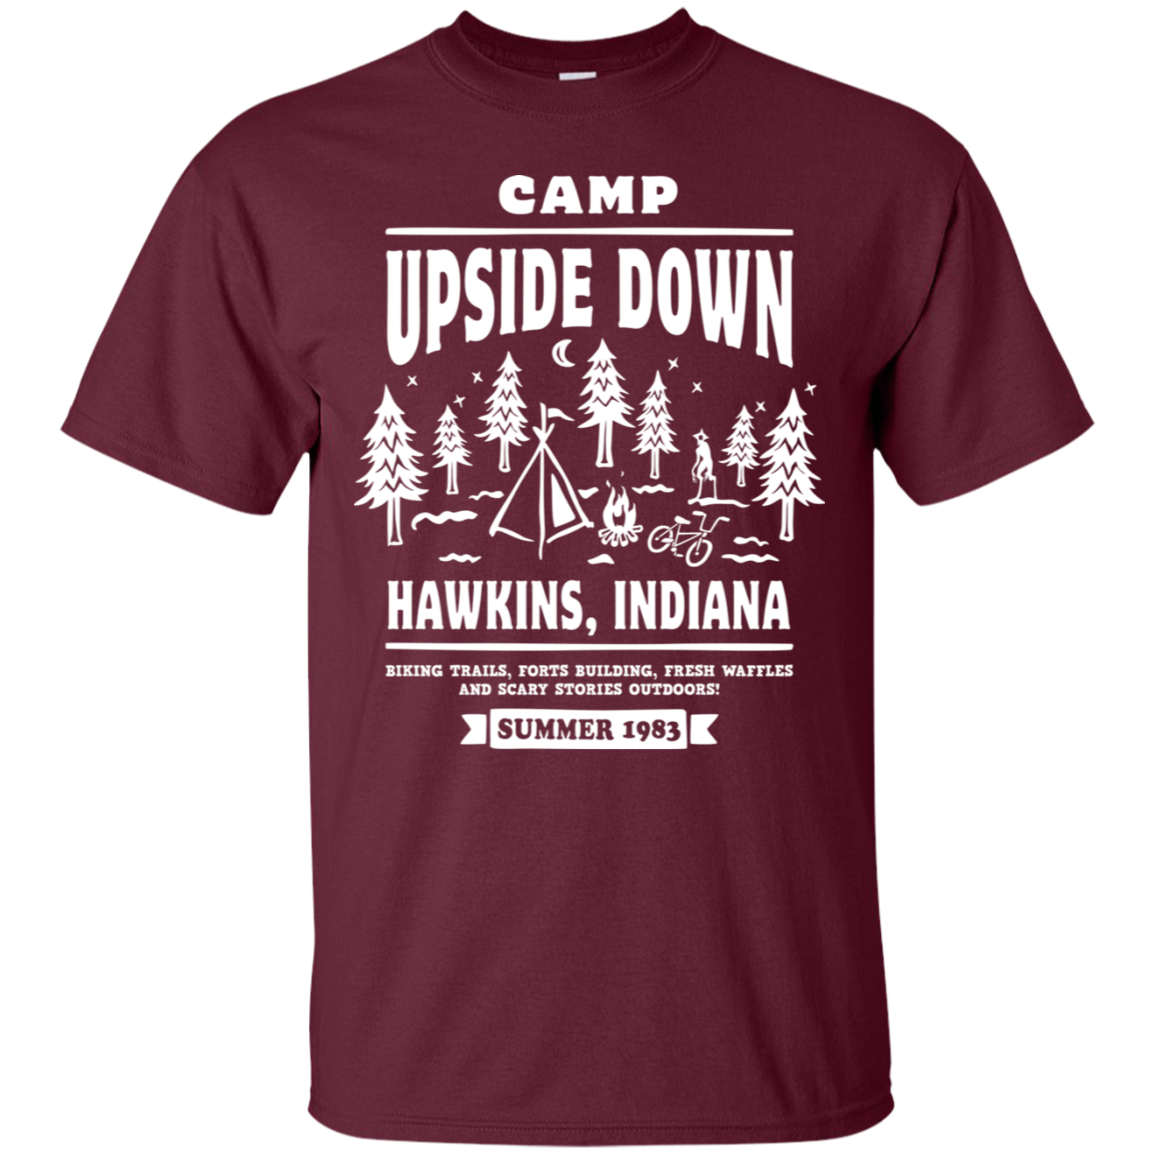 Camp Upside Down T-Shirt